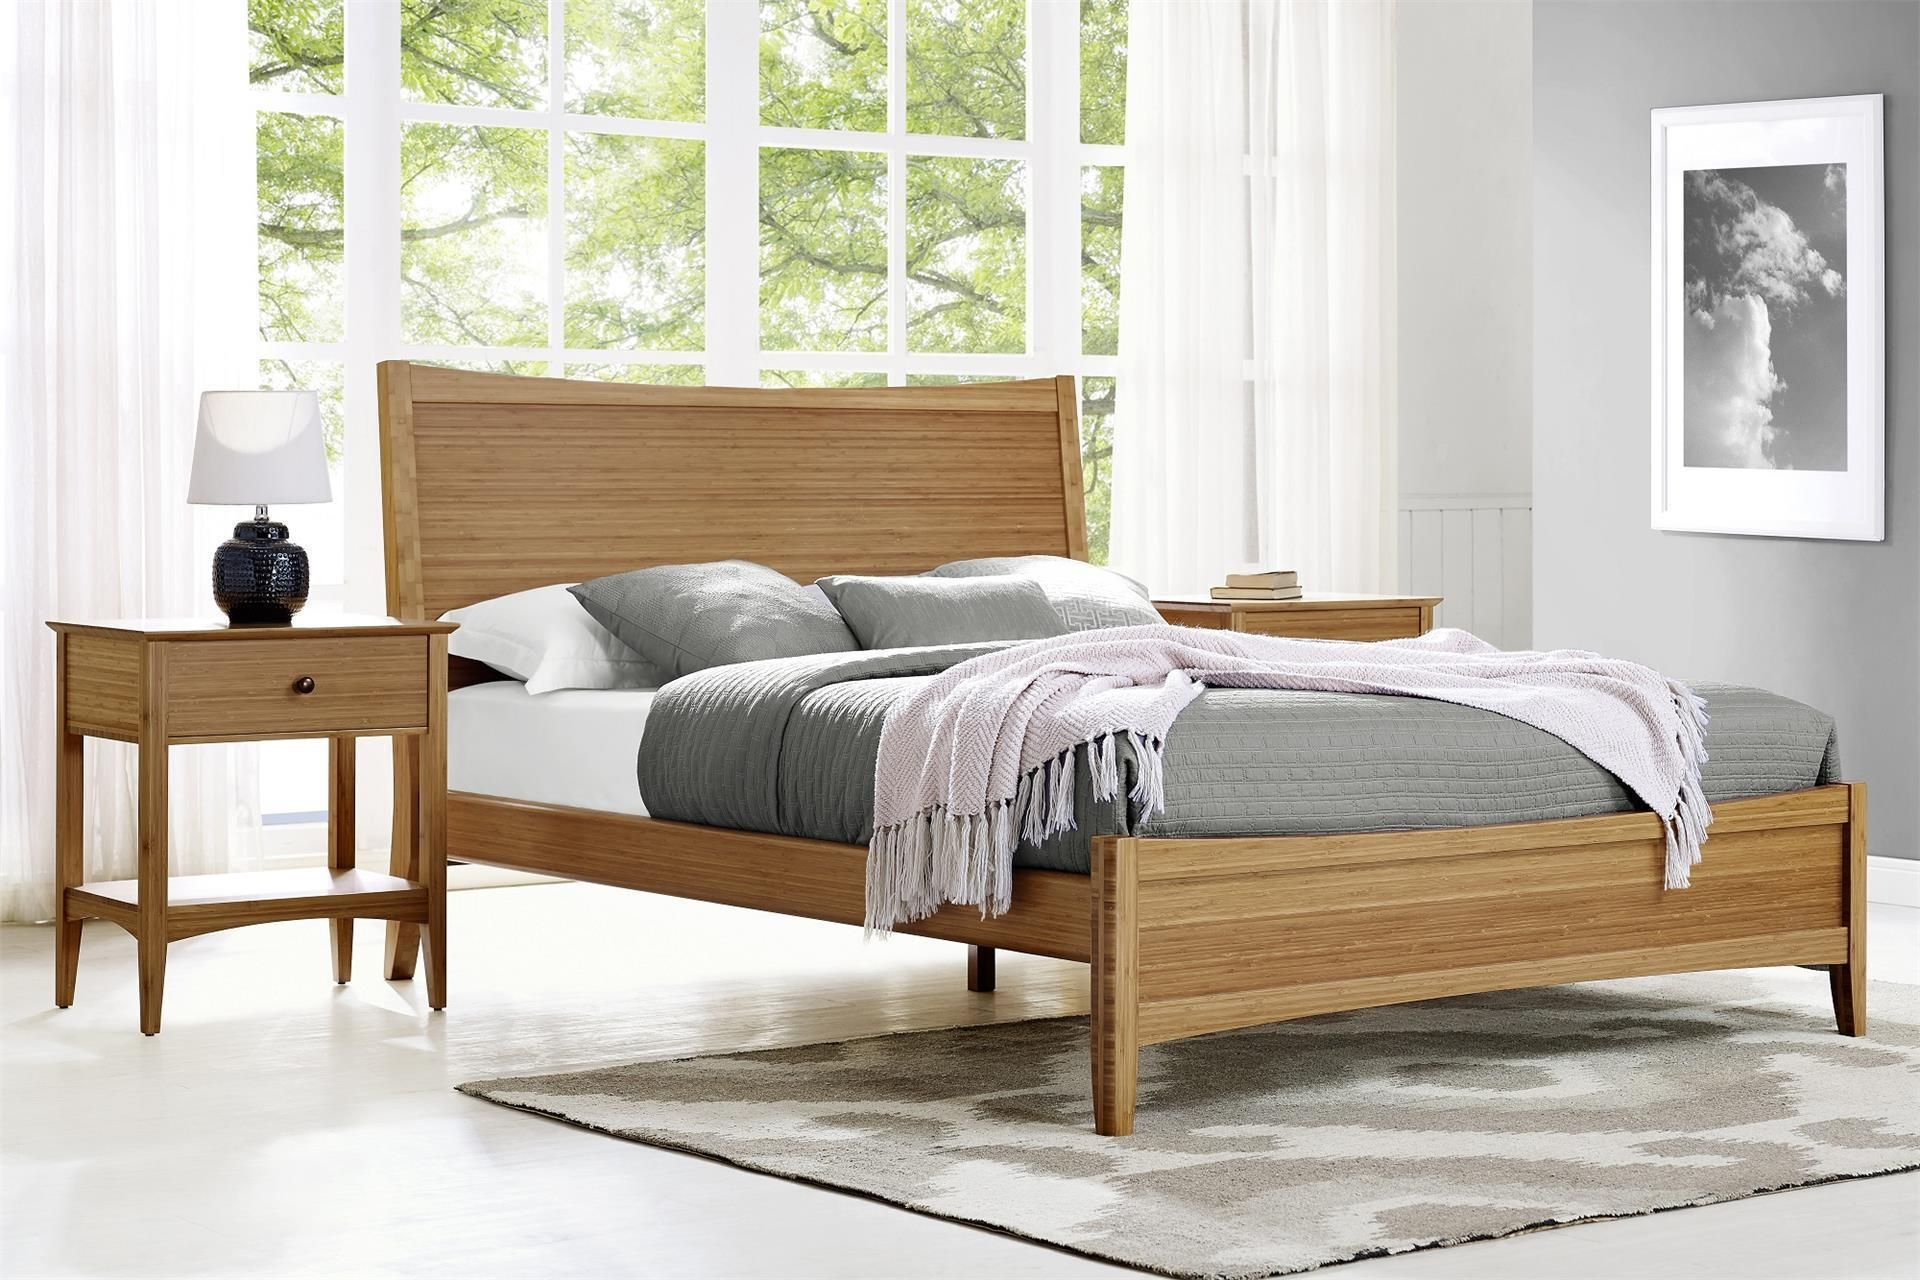 Greenington Willow 3 Piece Bamboo Bedroom Set Modern Platform Bed With Nightstands Furniture Collection This